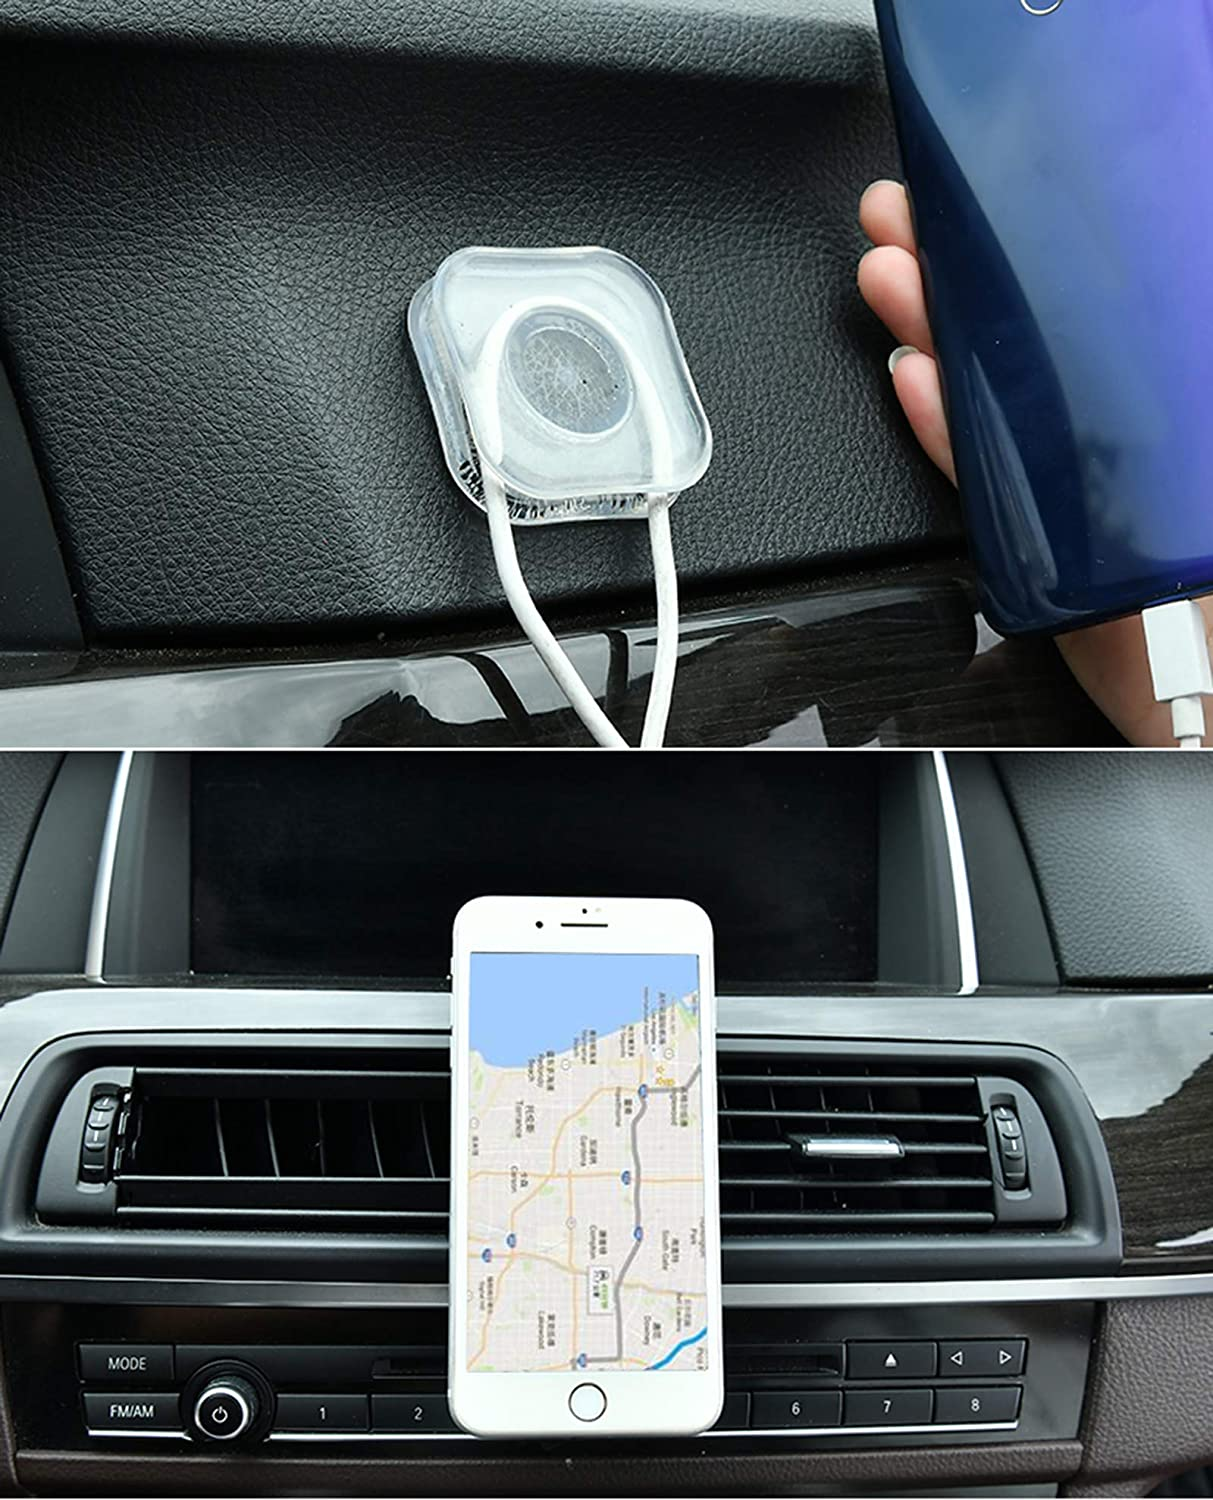 Circular X 2PIC Premium Nano Gel Pad Traceless Magic Stickers,Washable Multi-Functional Universal Sticky Car Phone Holder,Application for Car,Home,Office Storage of Various Small Device and Items